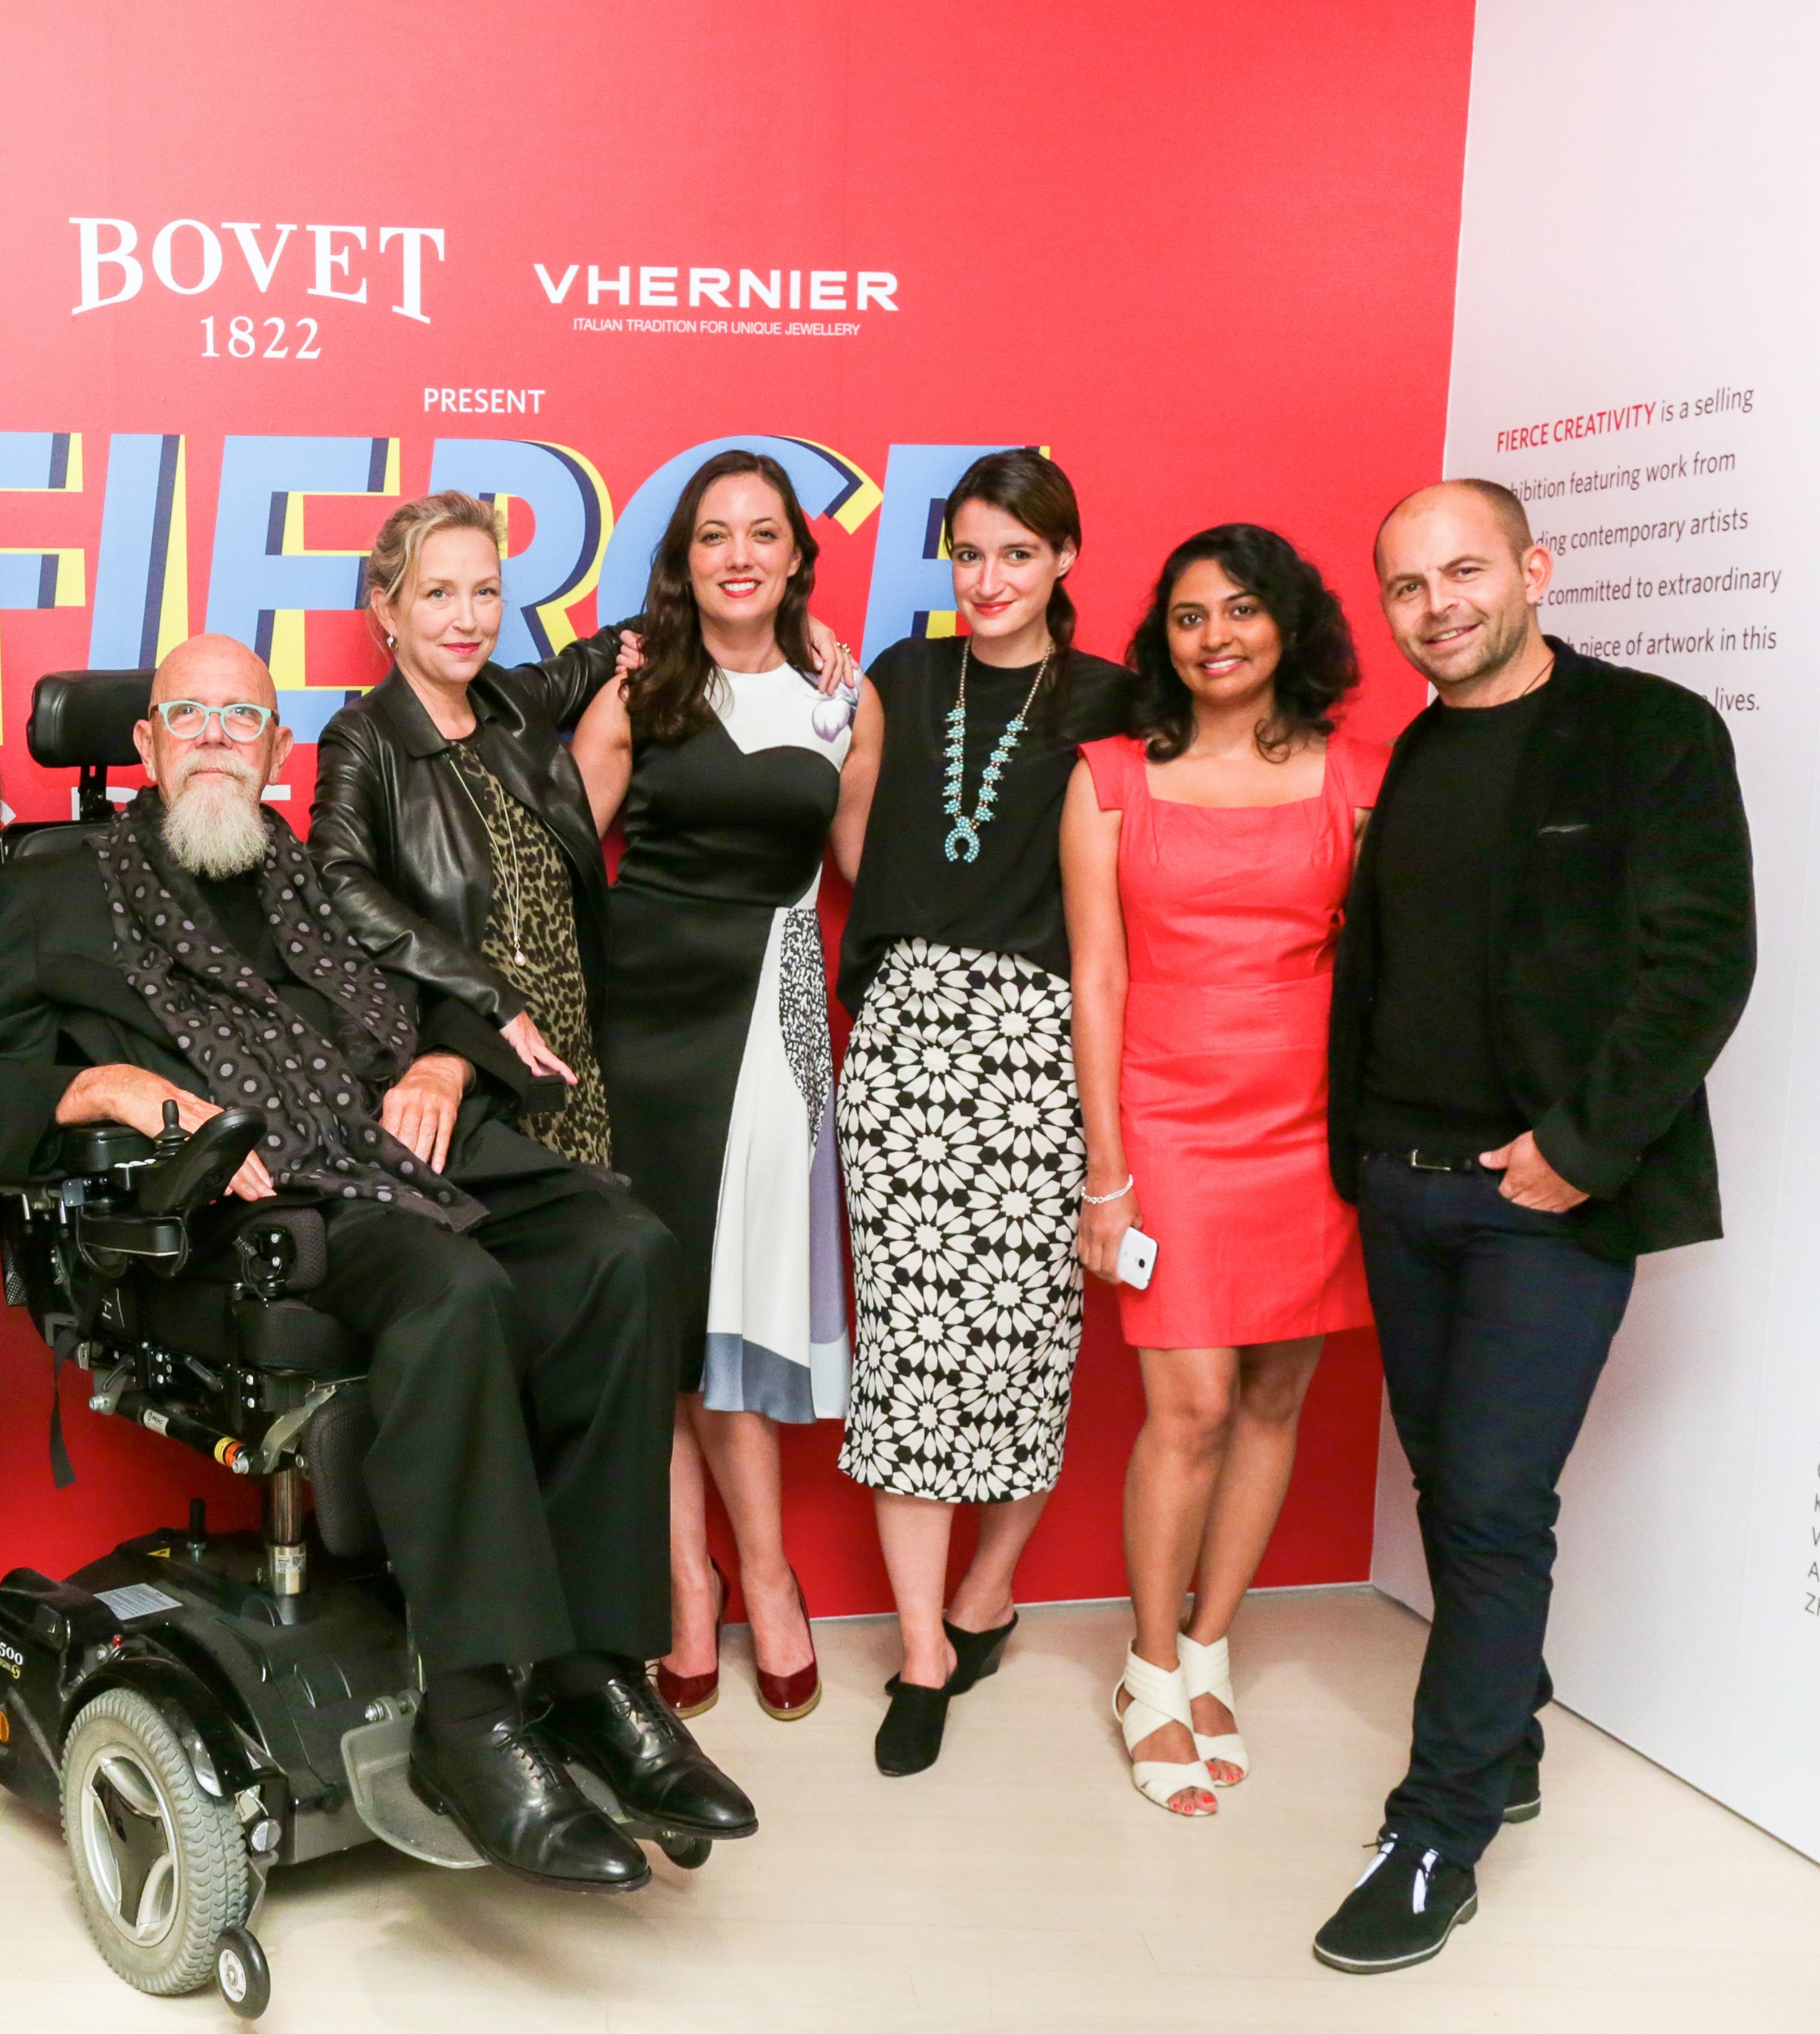 BOVET 1822 PRESENTS WITH VHERNIER FIERCE CREATIVITY 2014 OPENING RECEPTION CURATED BY CHUCK CLOSE AND JESSICA CRAIG-MARTIN IN SUPPORT OF ARTISTS FOR PEACE AND JUSTICE AT PACE GALLERY